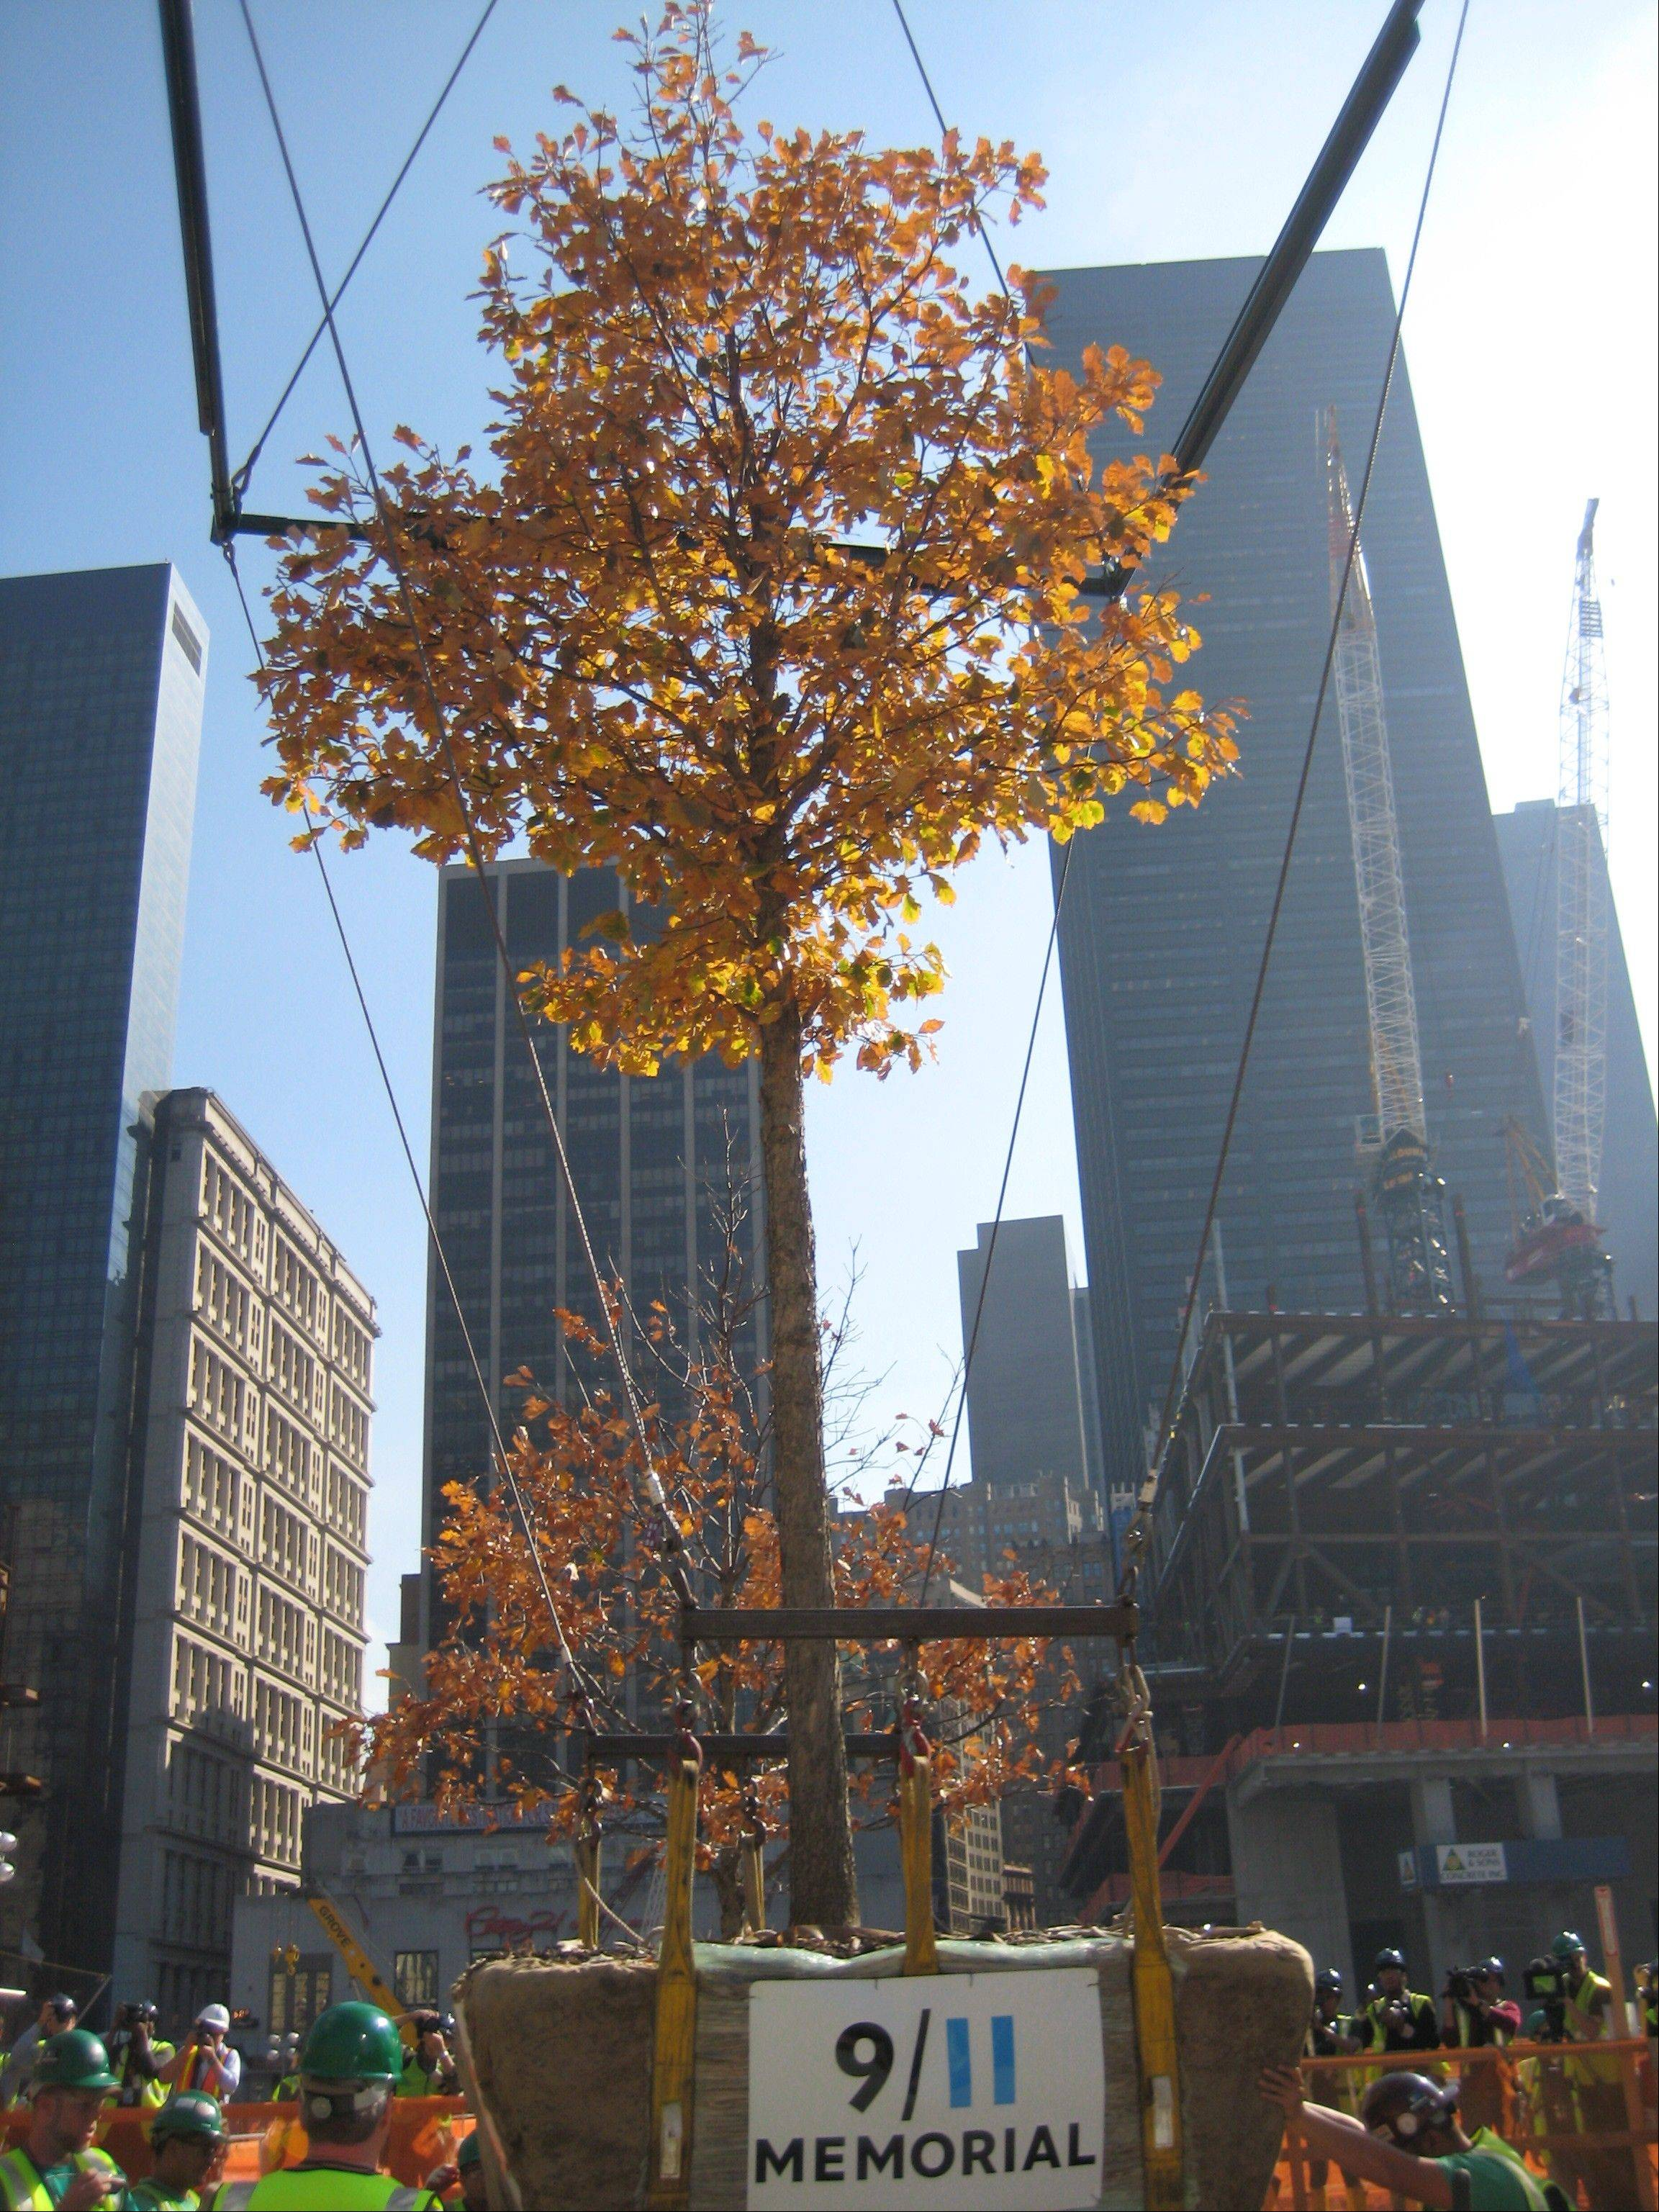 Bartlett Tree Experts cared for oak trees before they were planted at Ground Zero in manhattan.